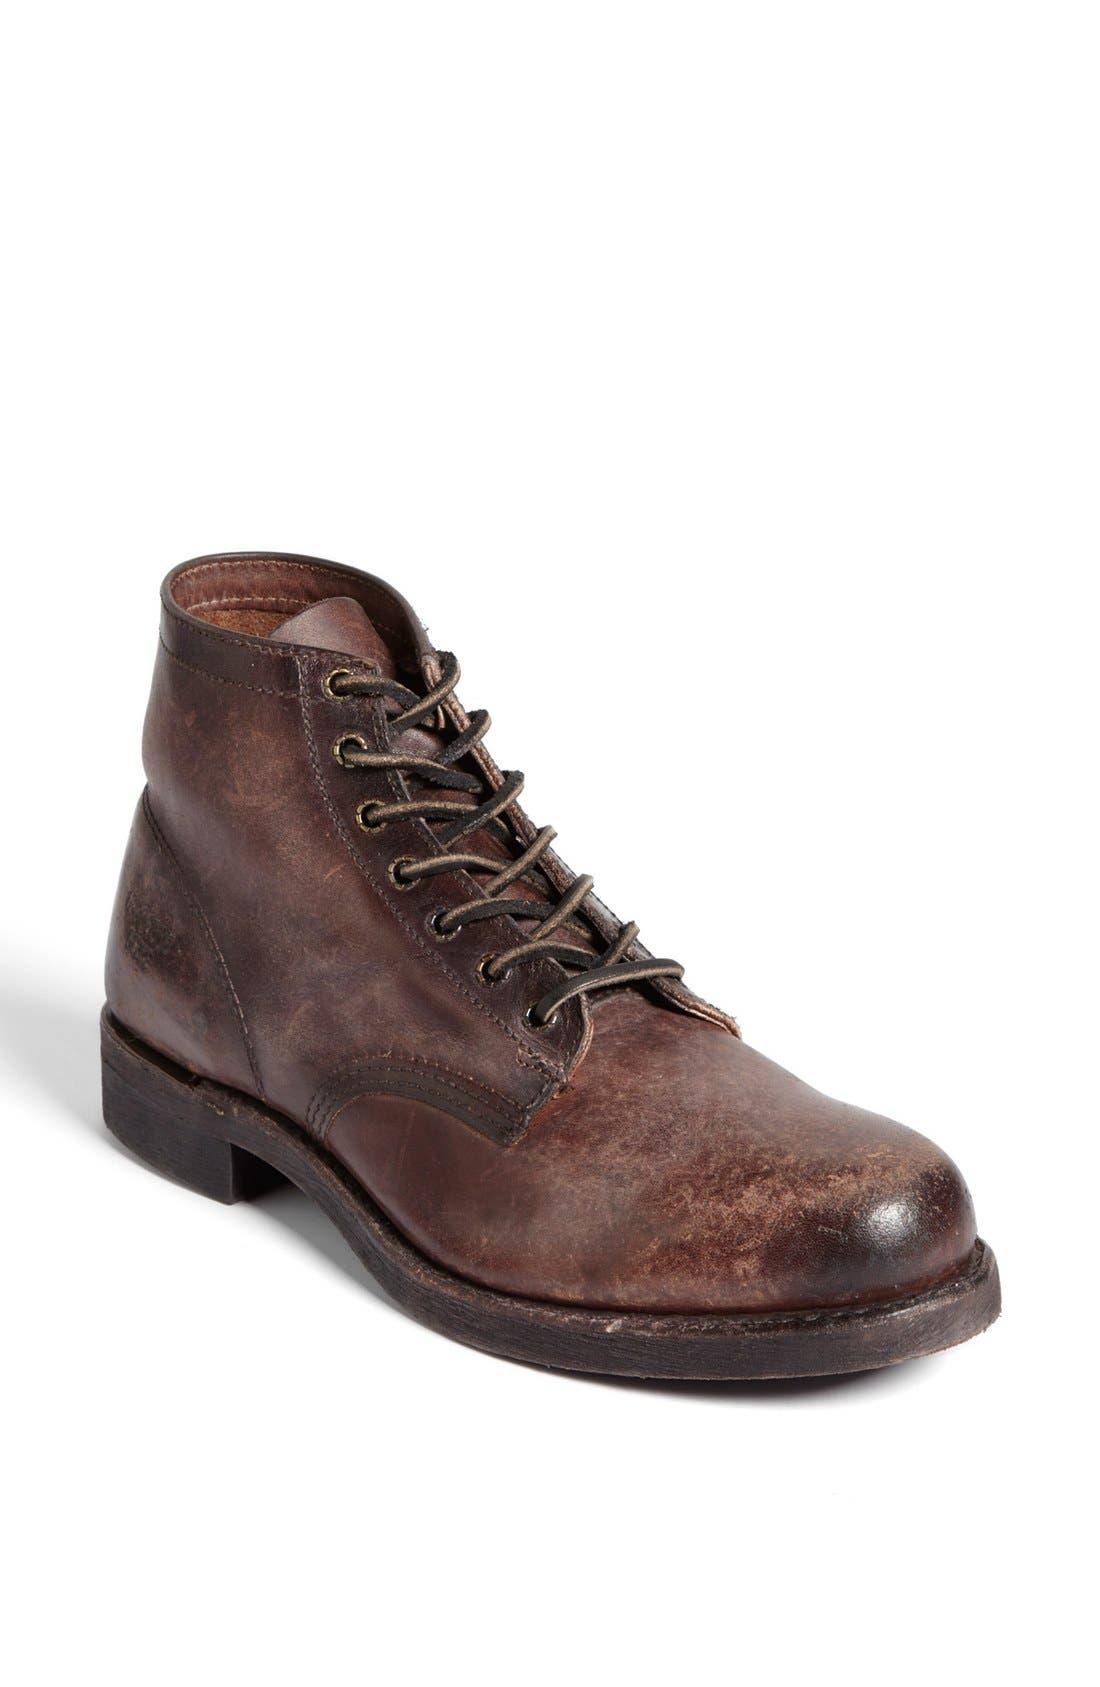 Main Image - Frye 'Prison' Leather Boot